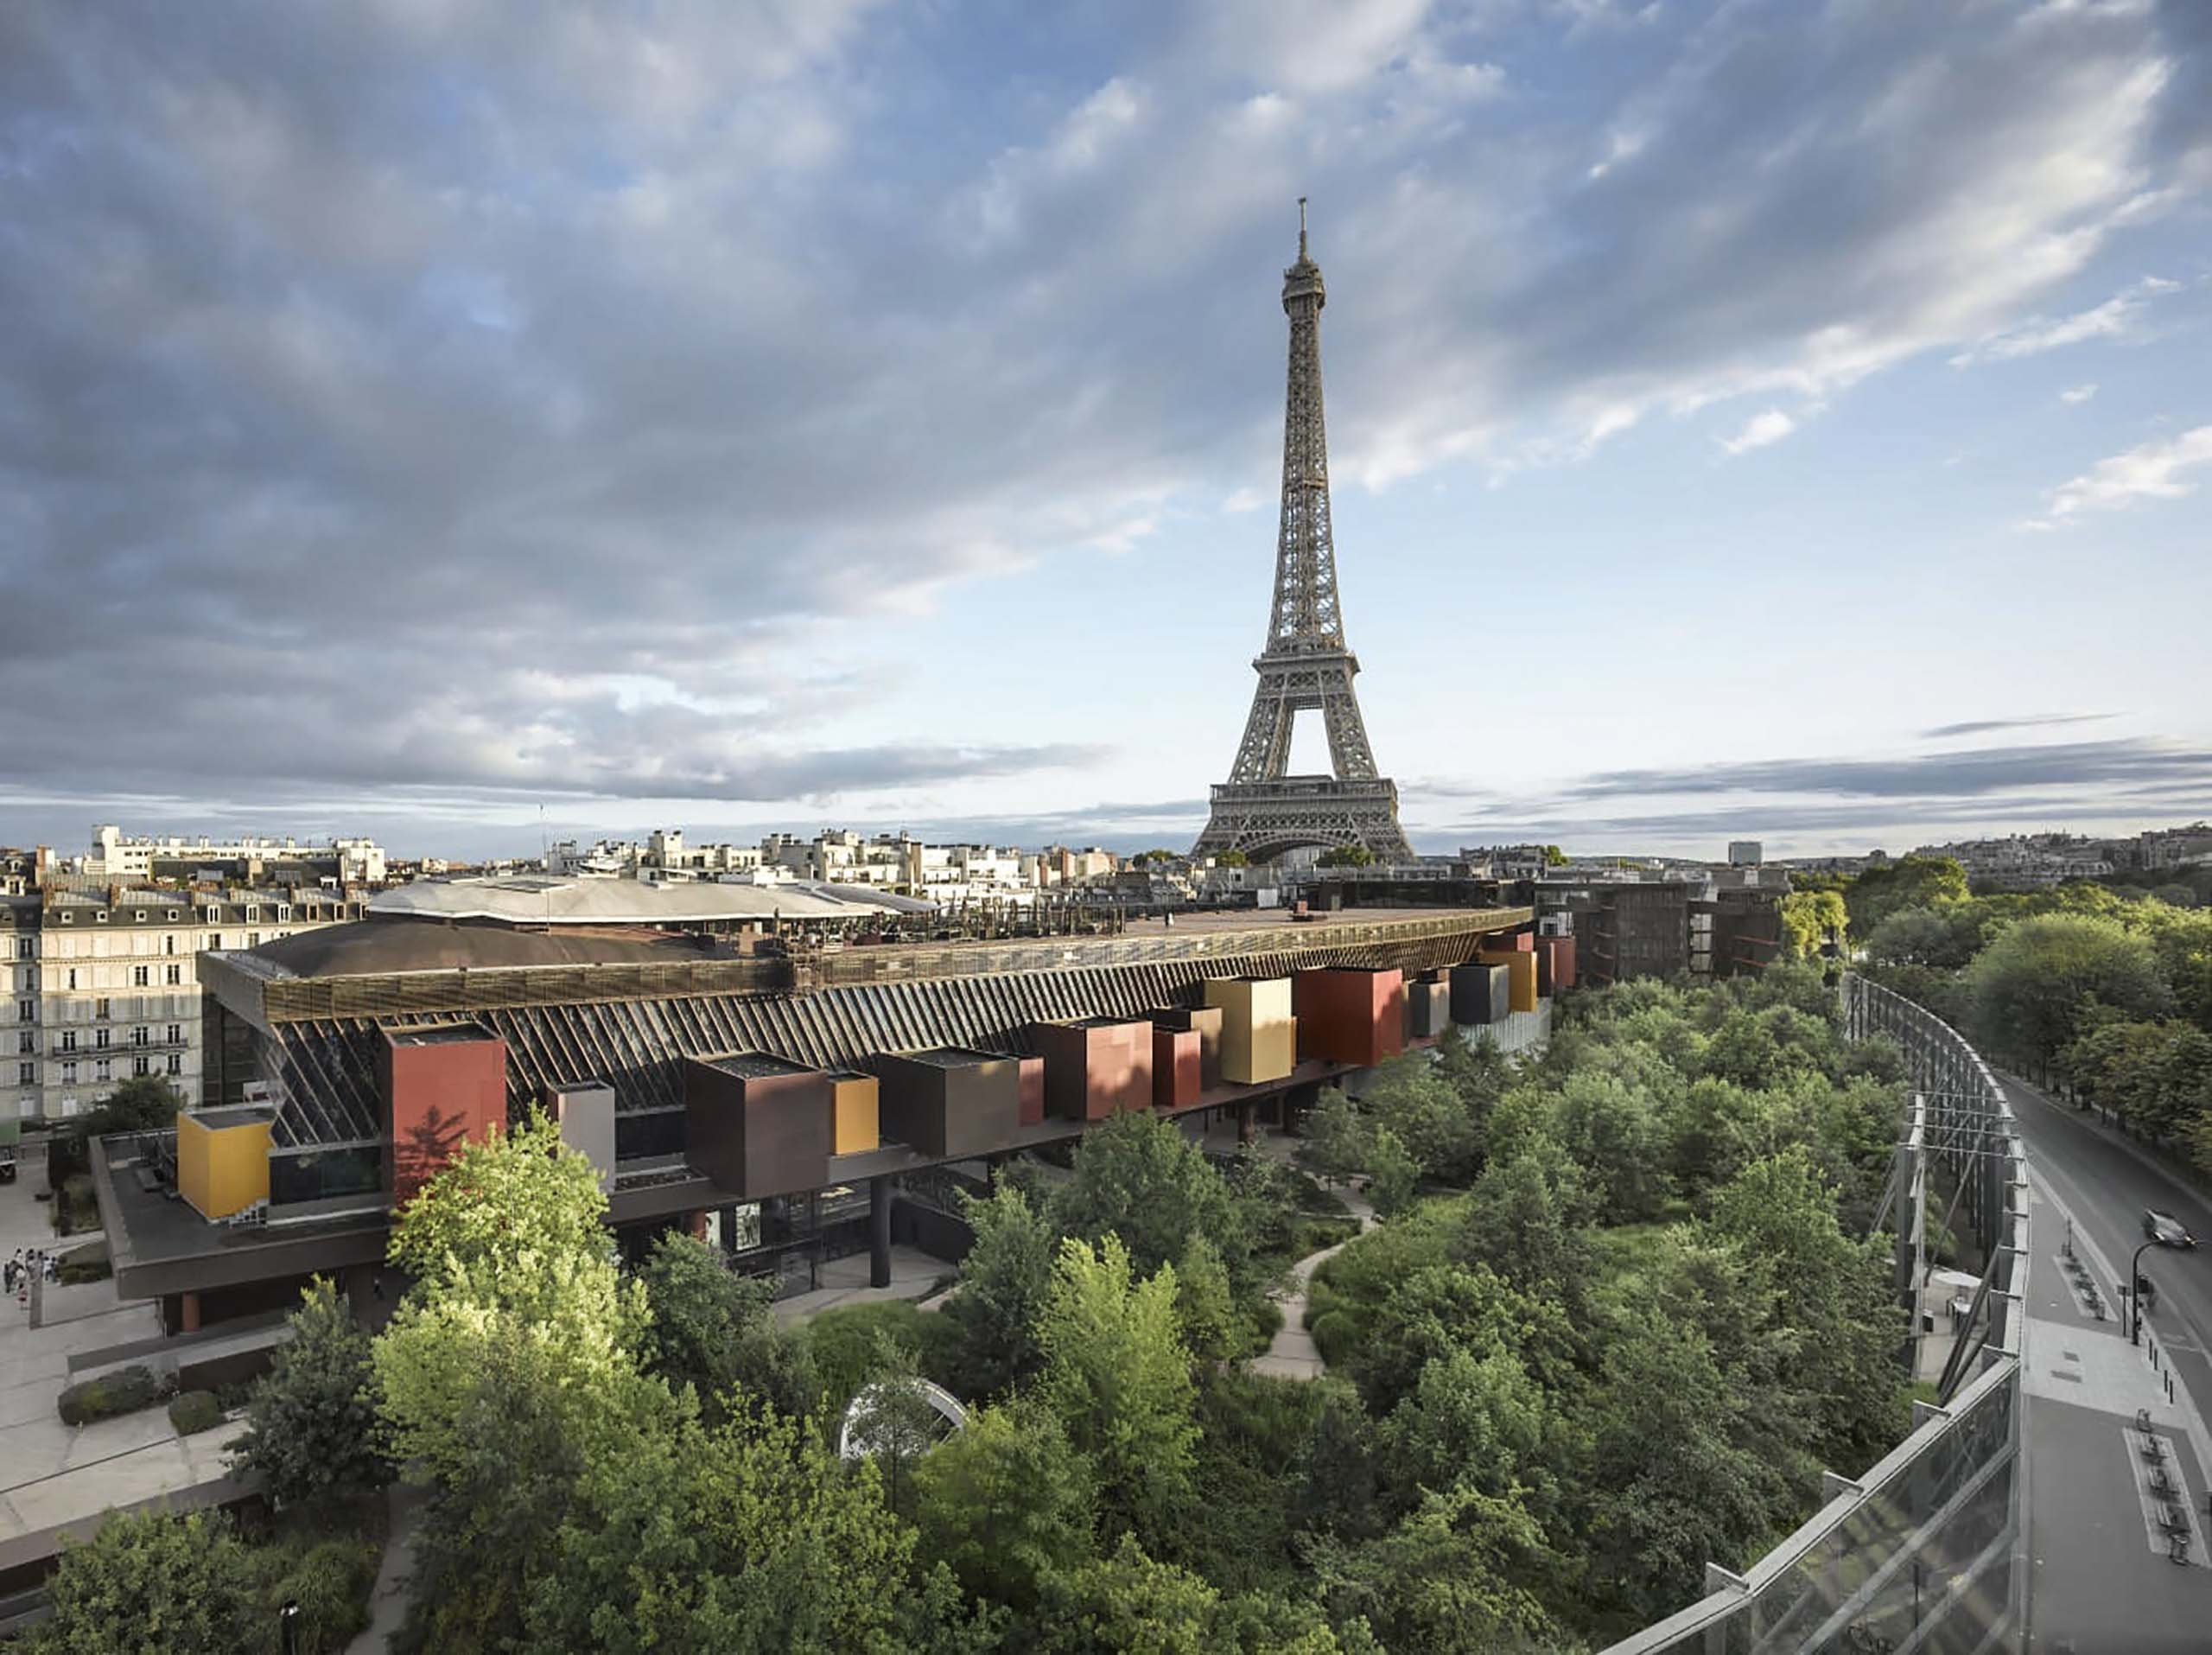 Musée du quai Branly - Jacques Chirac, Paris